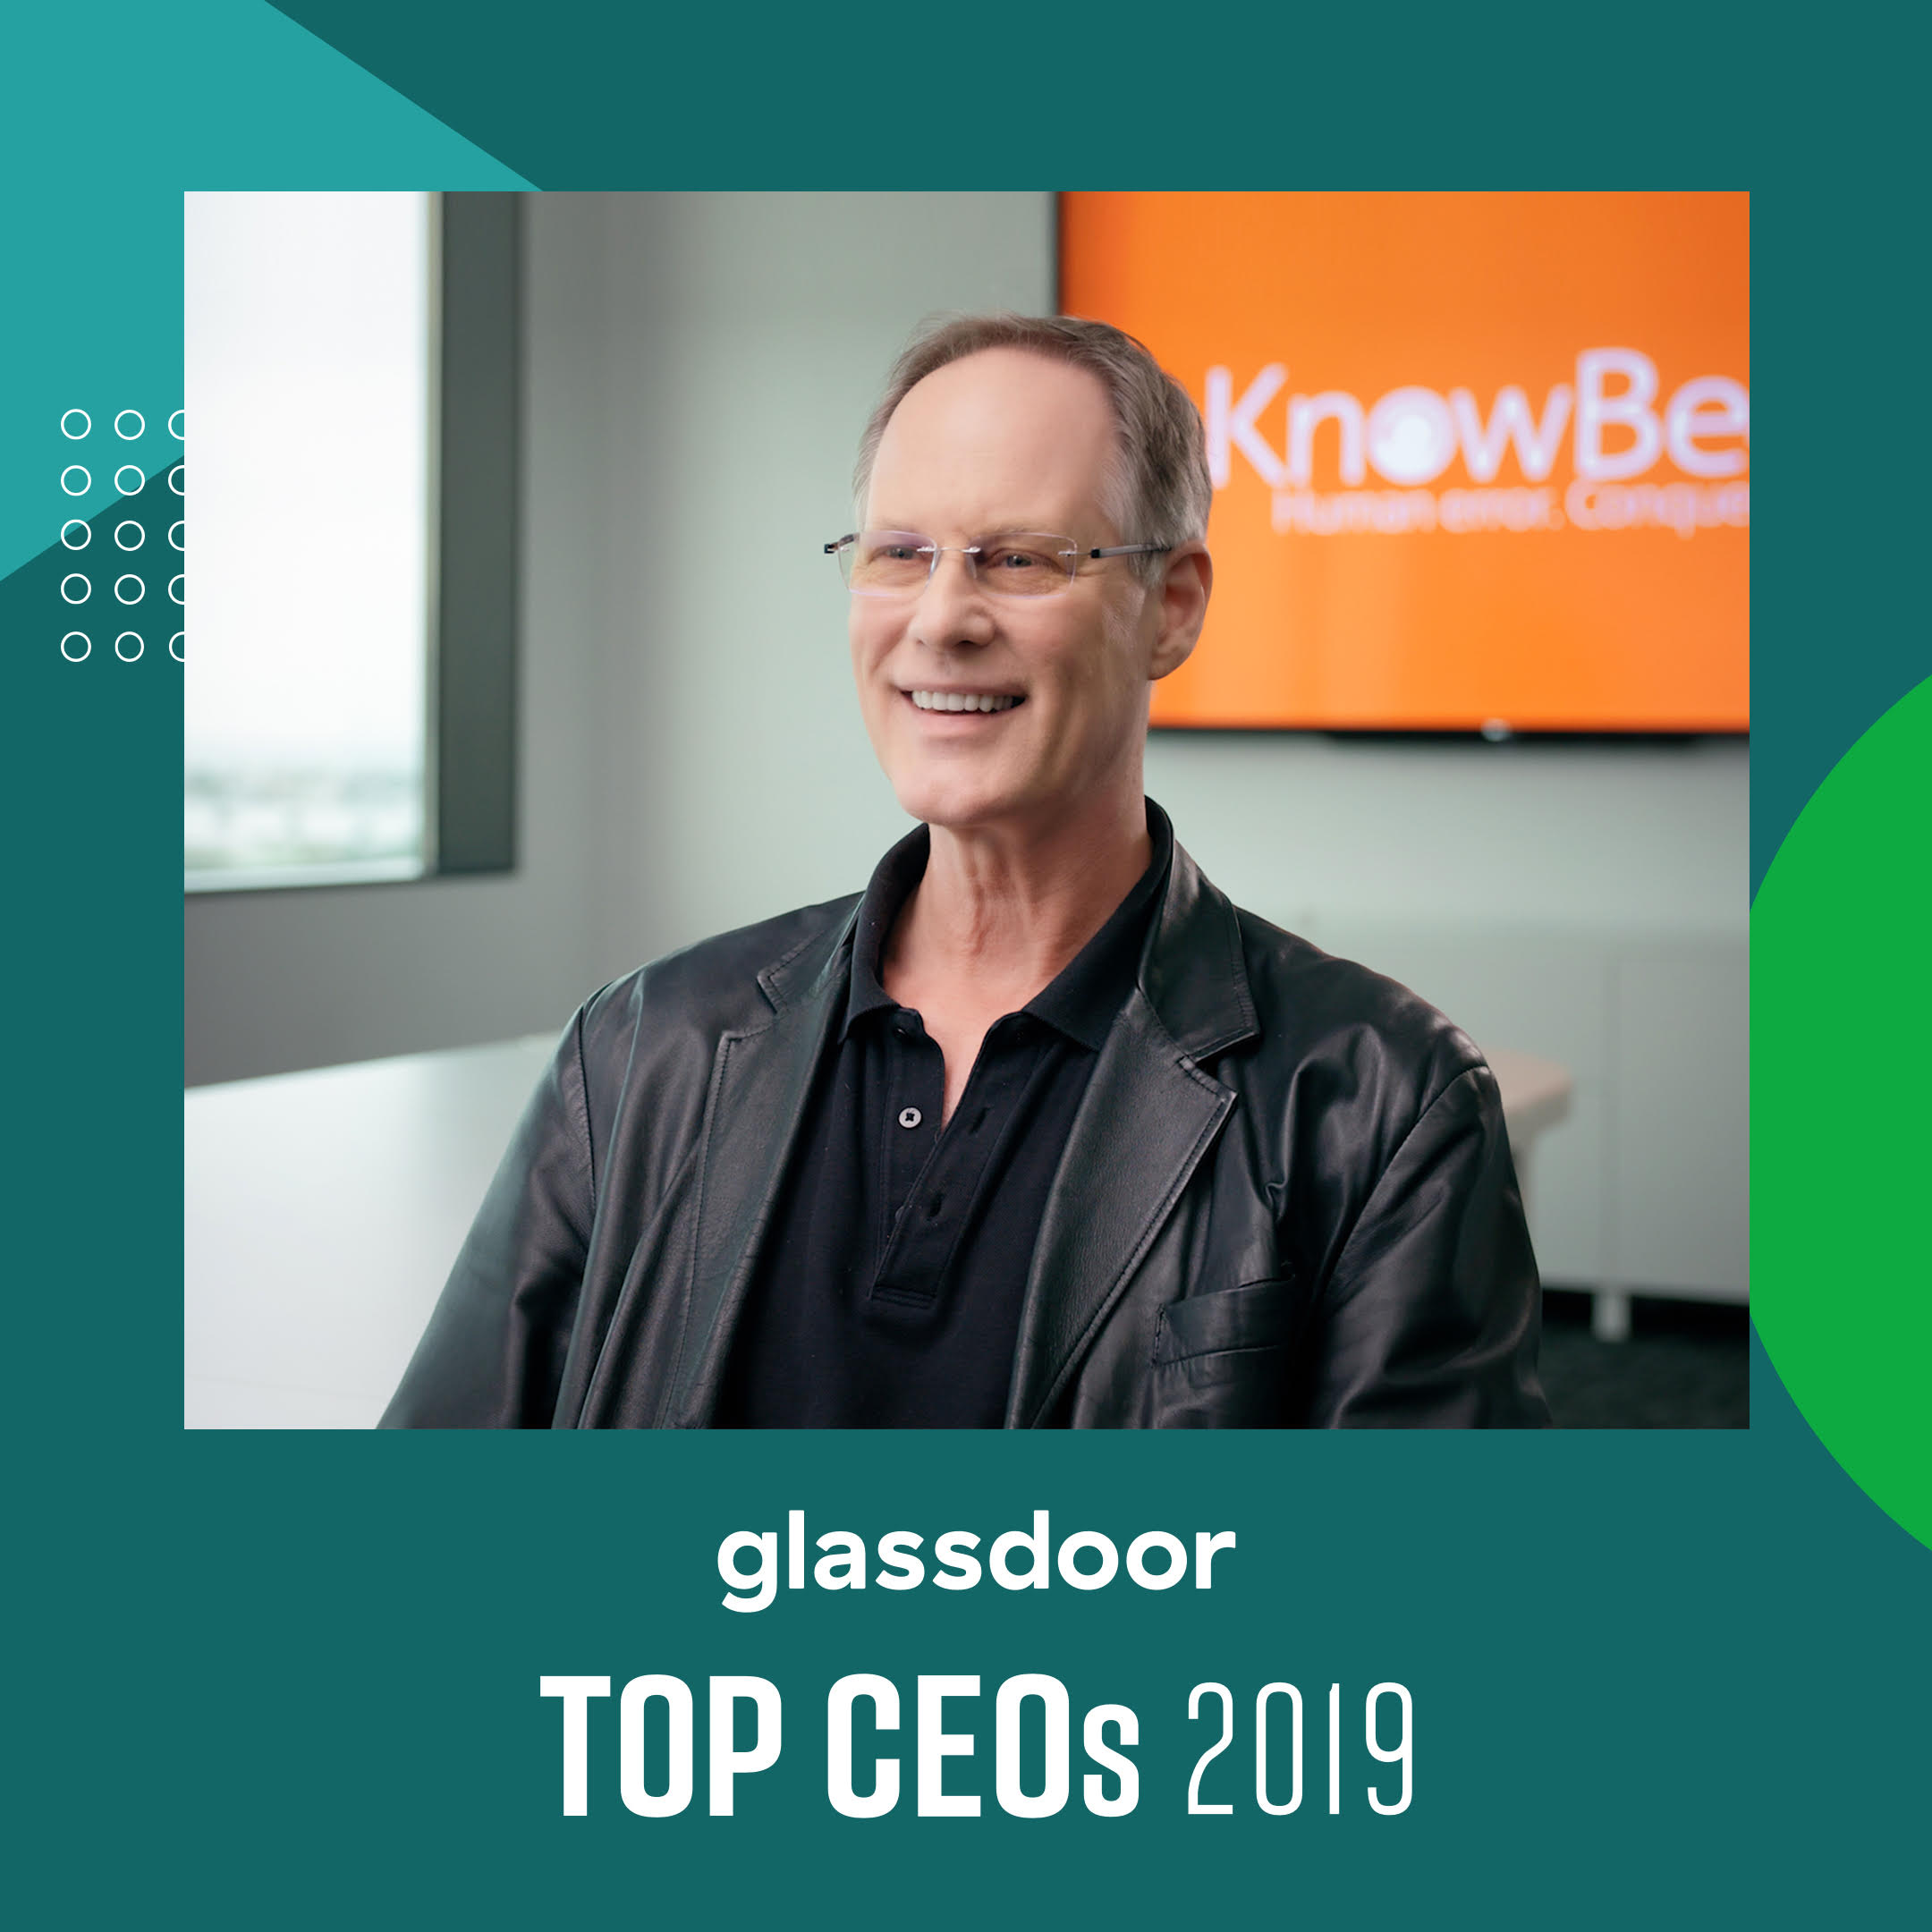 Stu is a Top CEO of 2019!